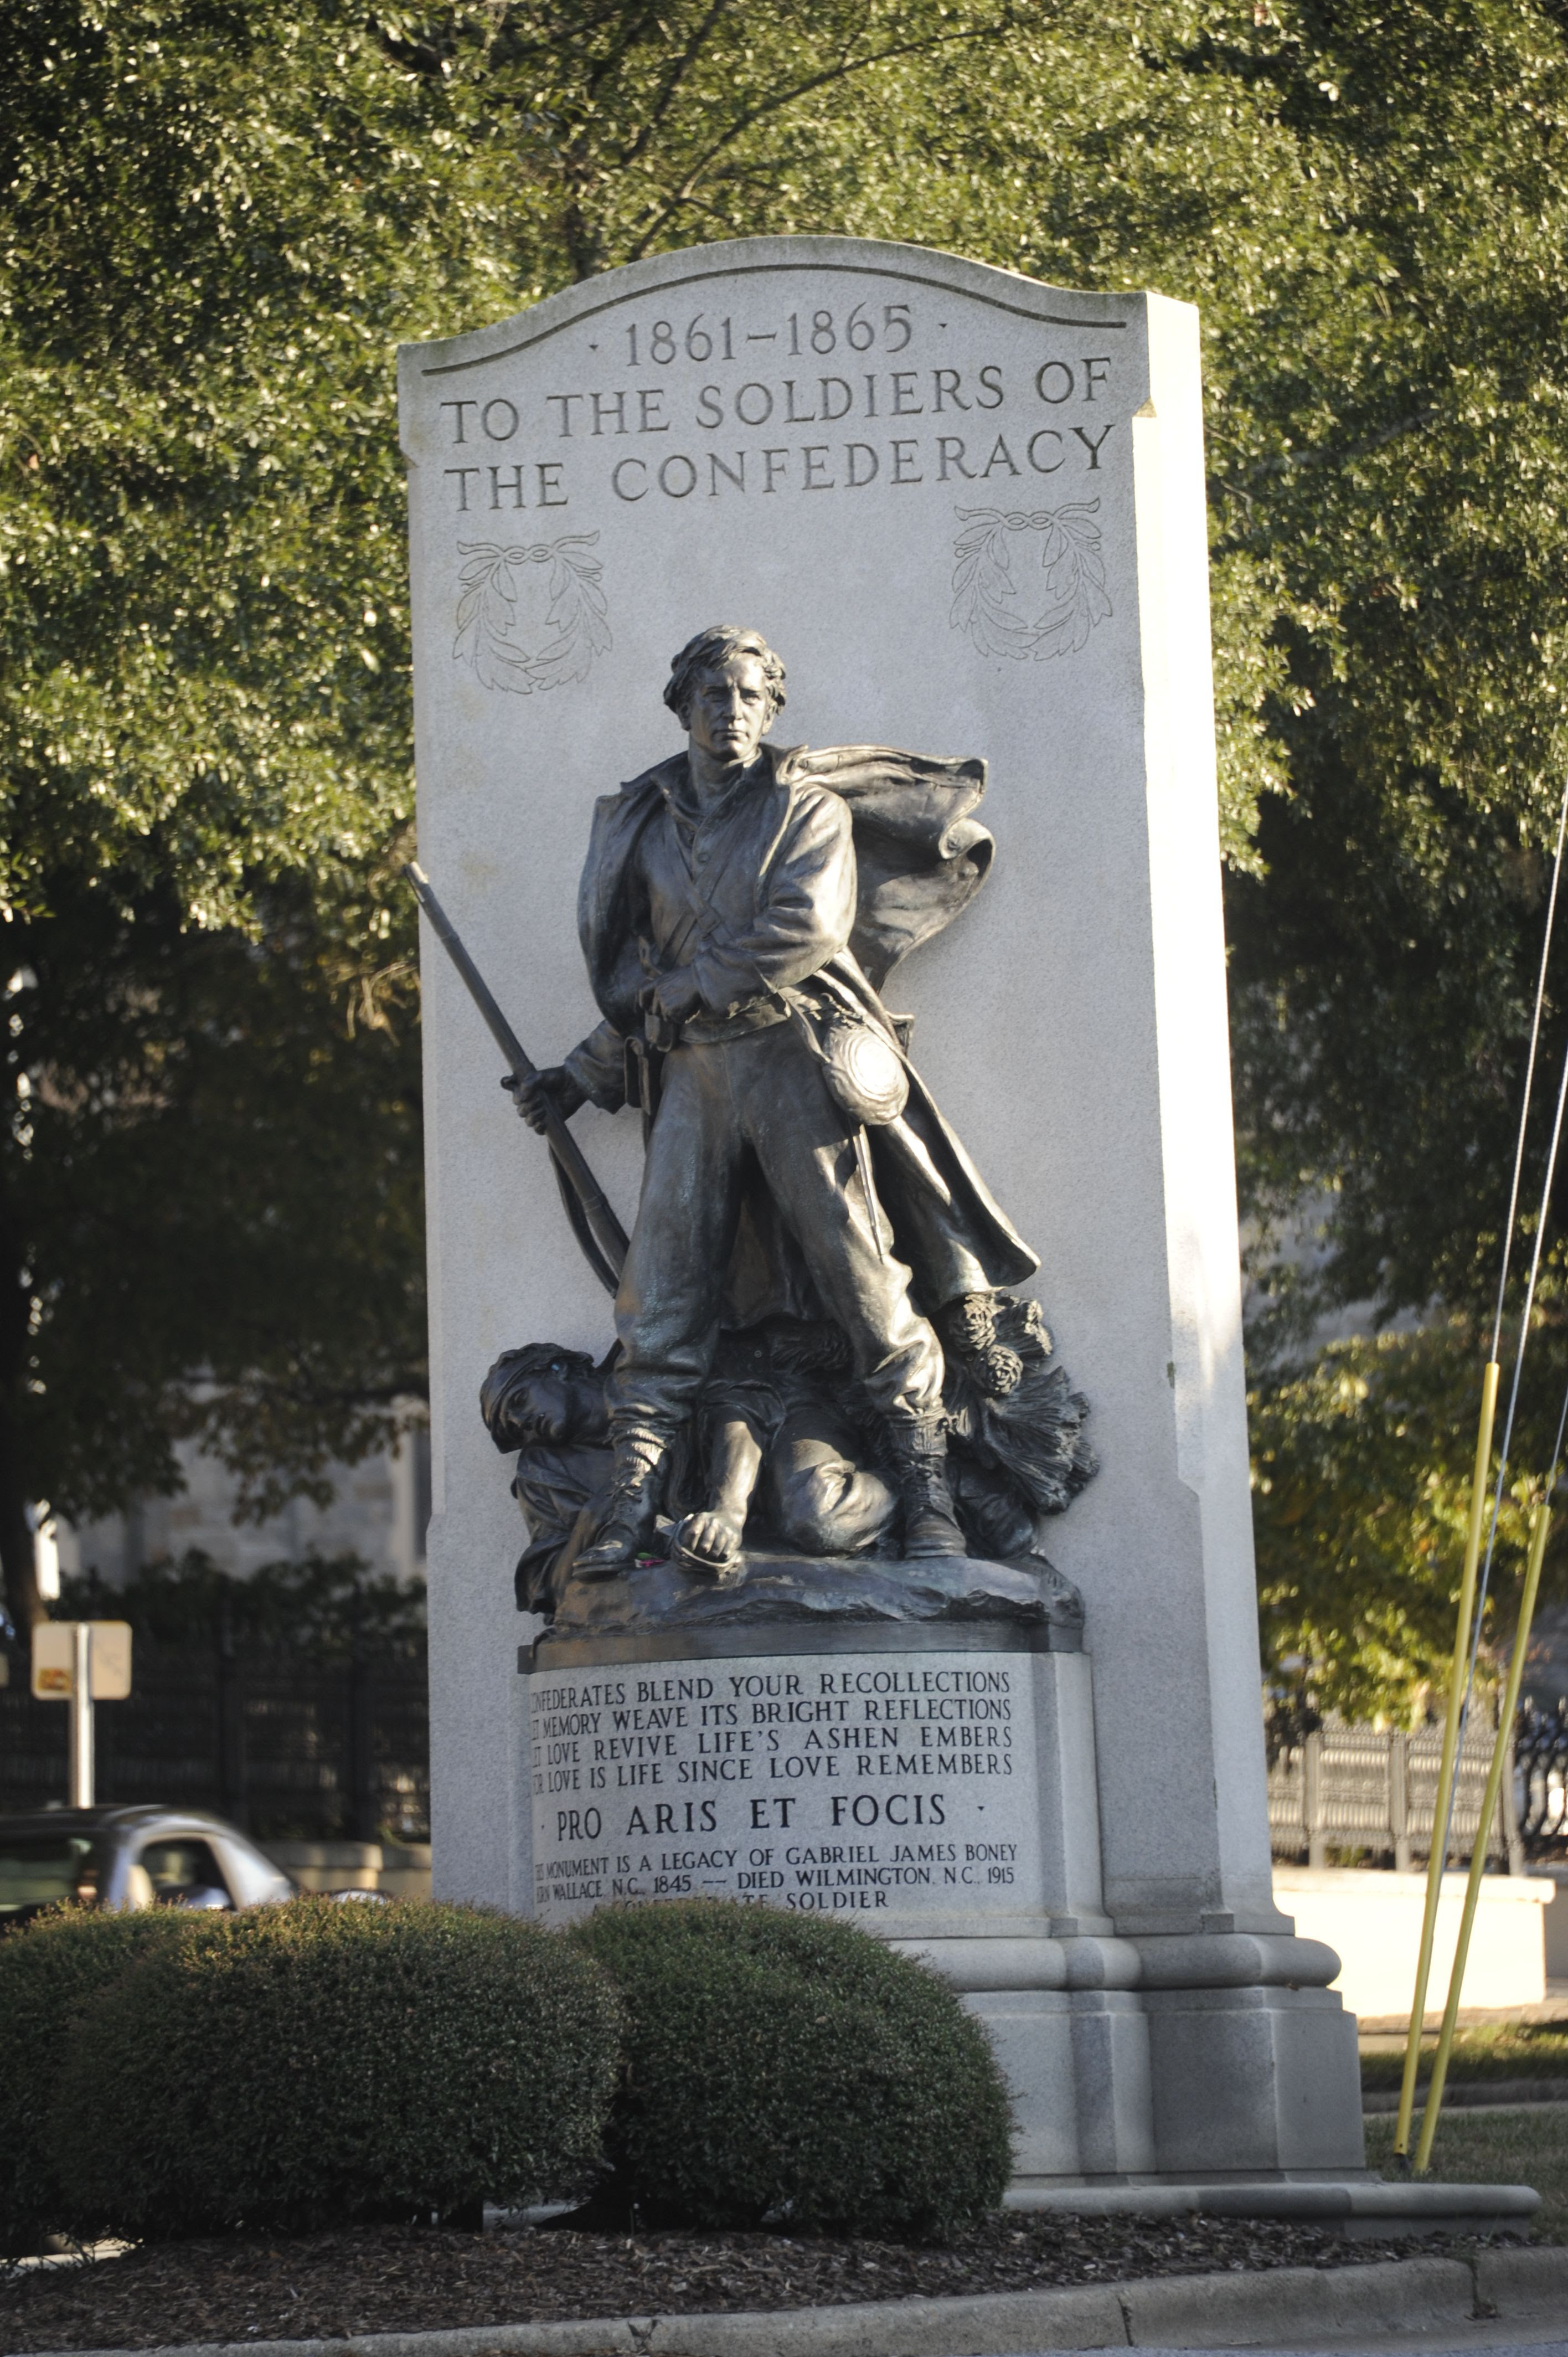 http://theitcountreyjustice.files.wordpress.com/2013/10/wilmington-confederacy-monument.jpg